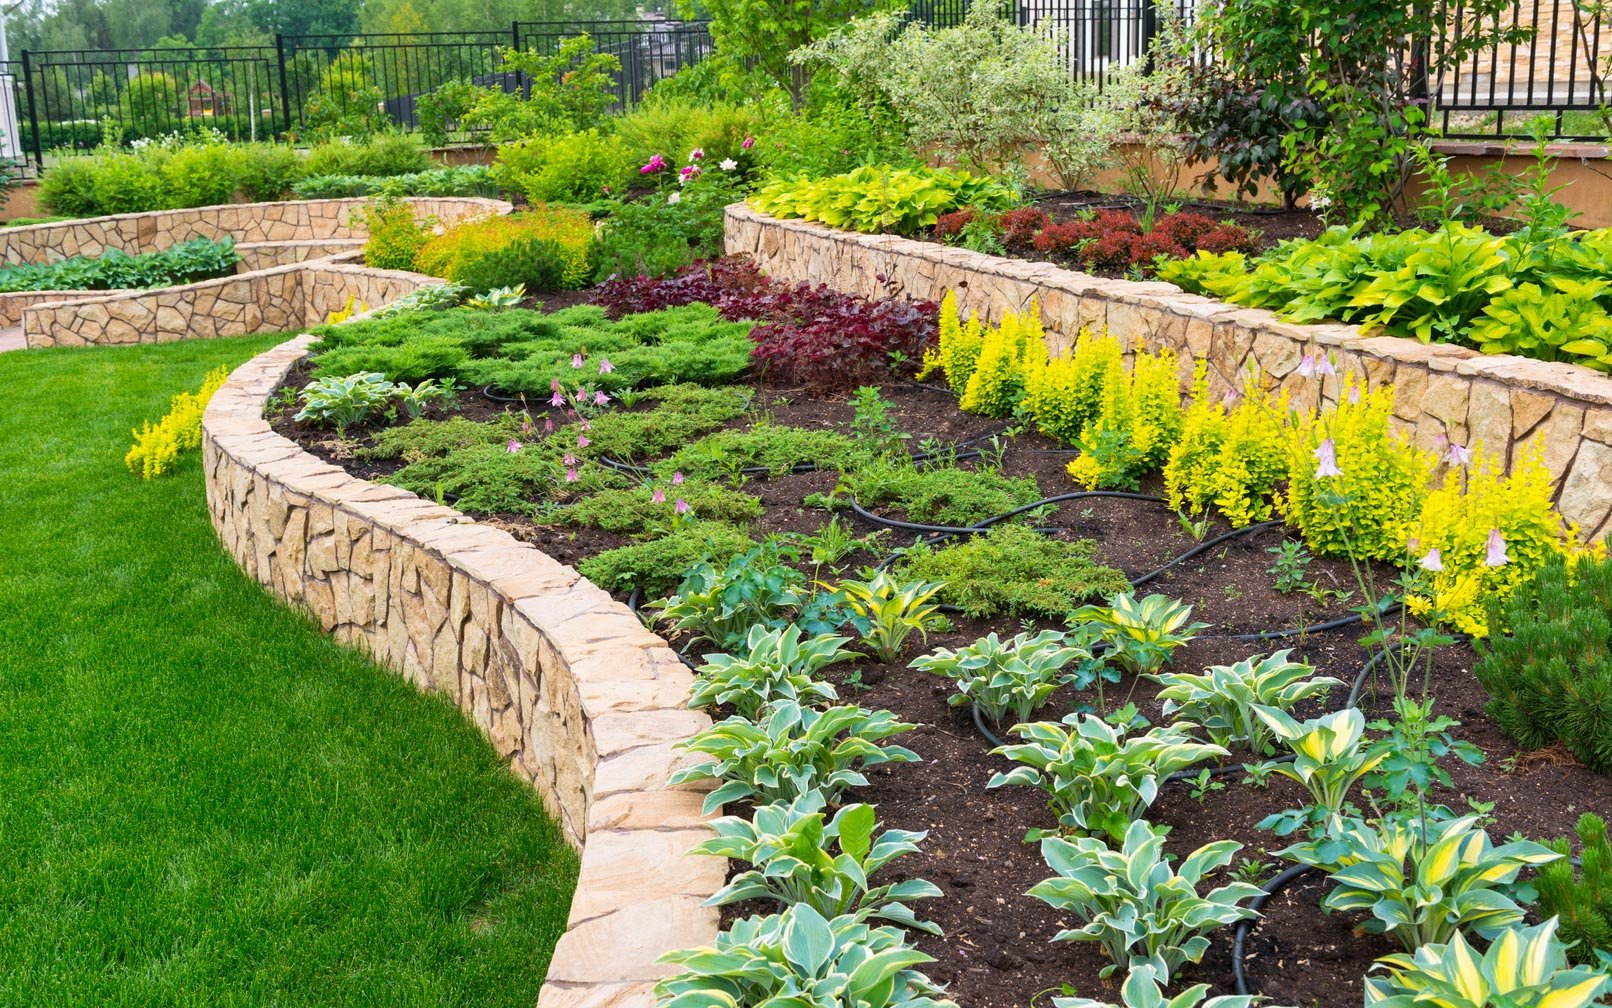 Top 3 2017 Landscaping Trends For Coastal Landscaping & Eco-Friendly Landscaping